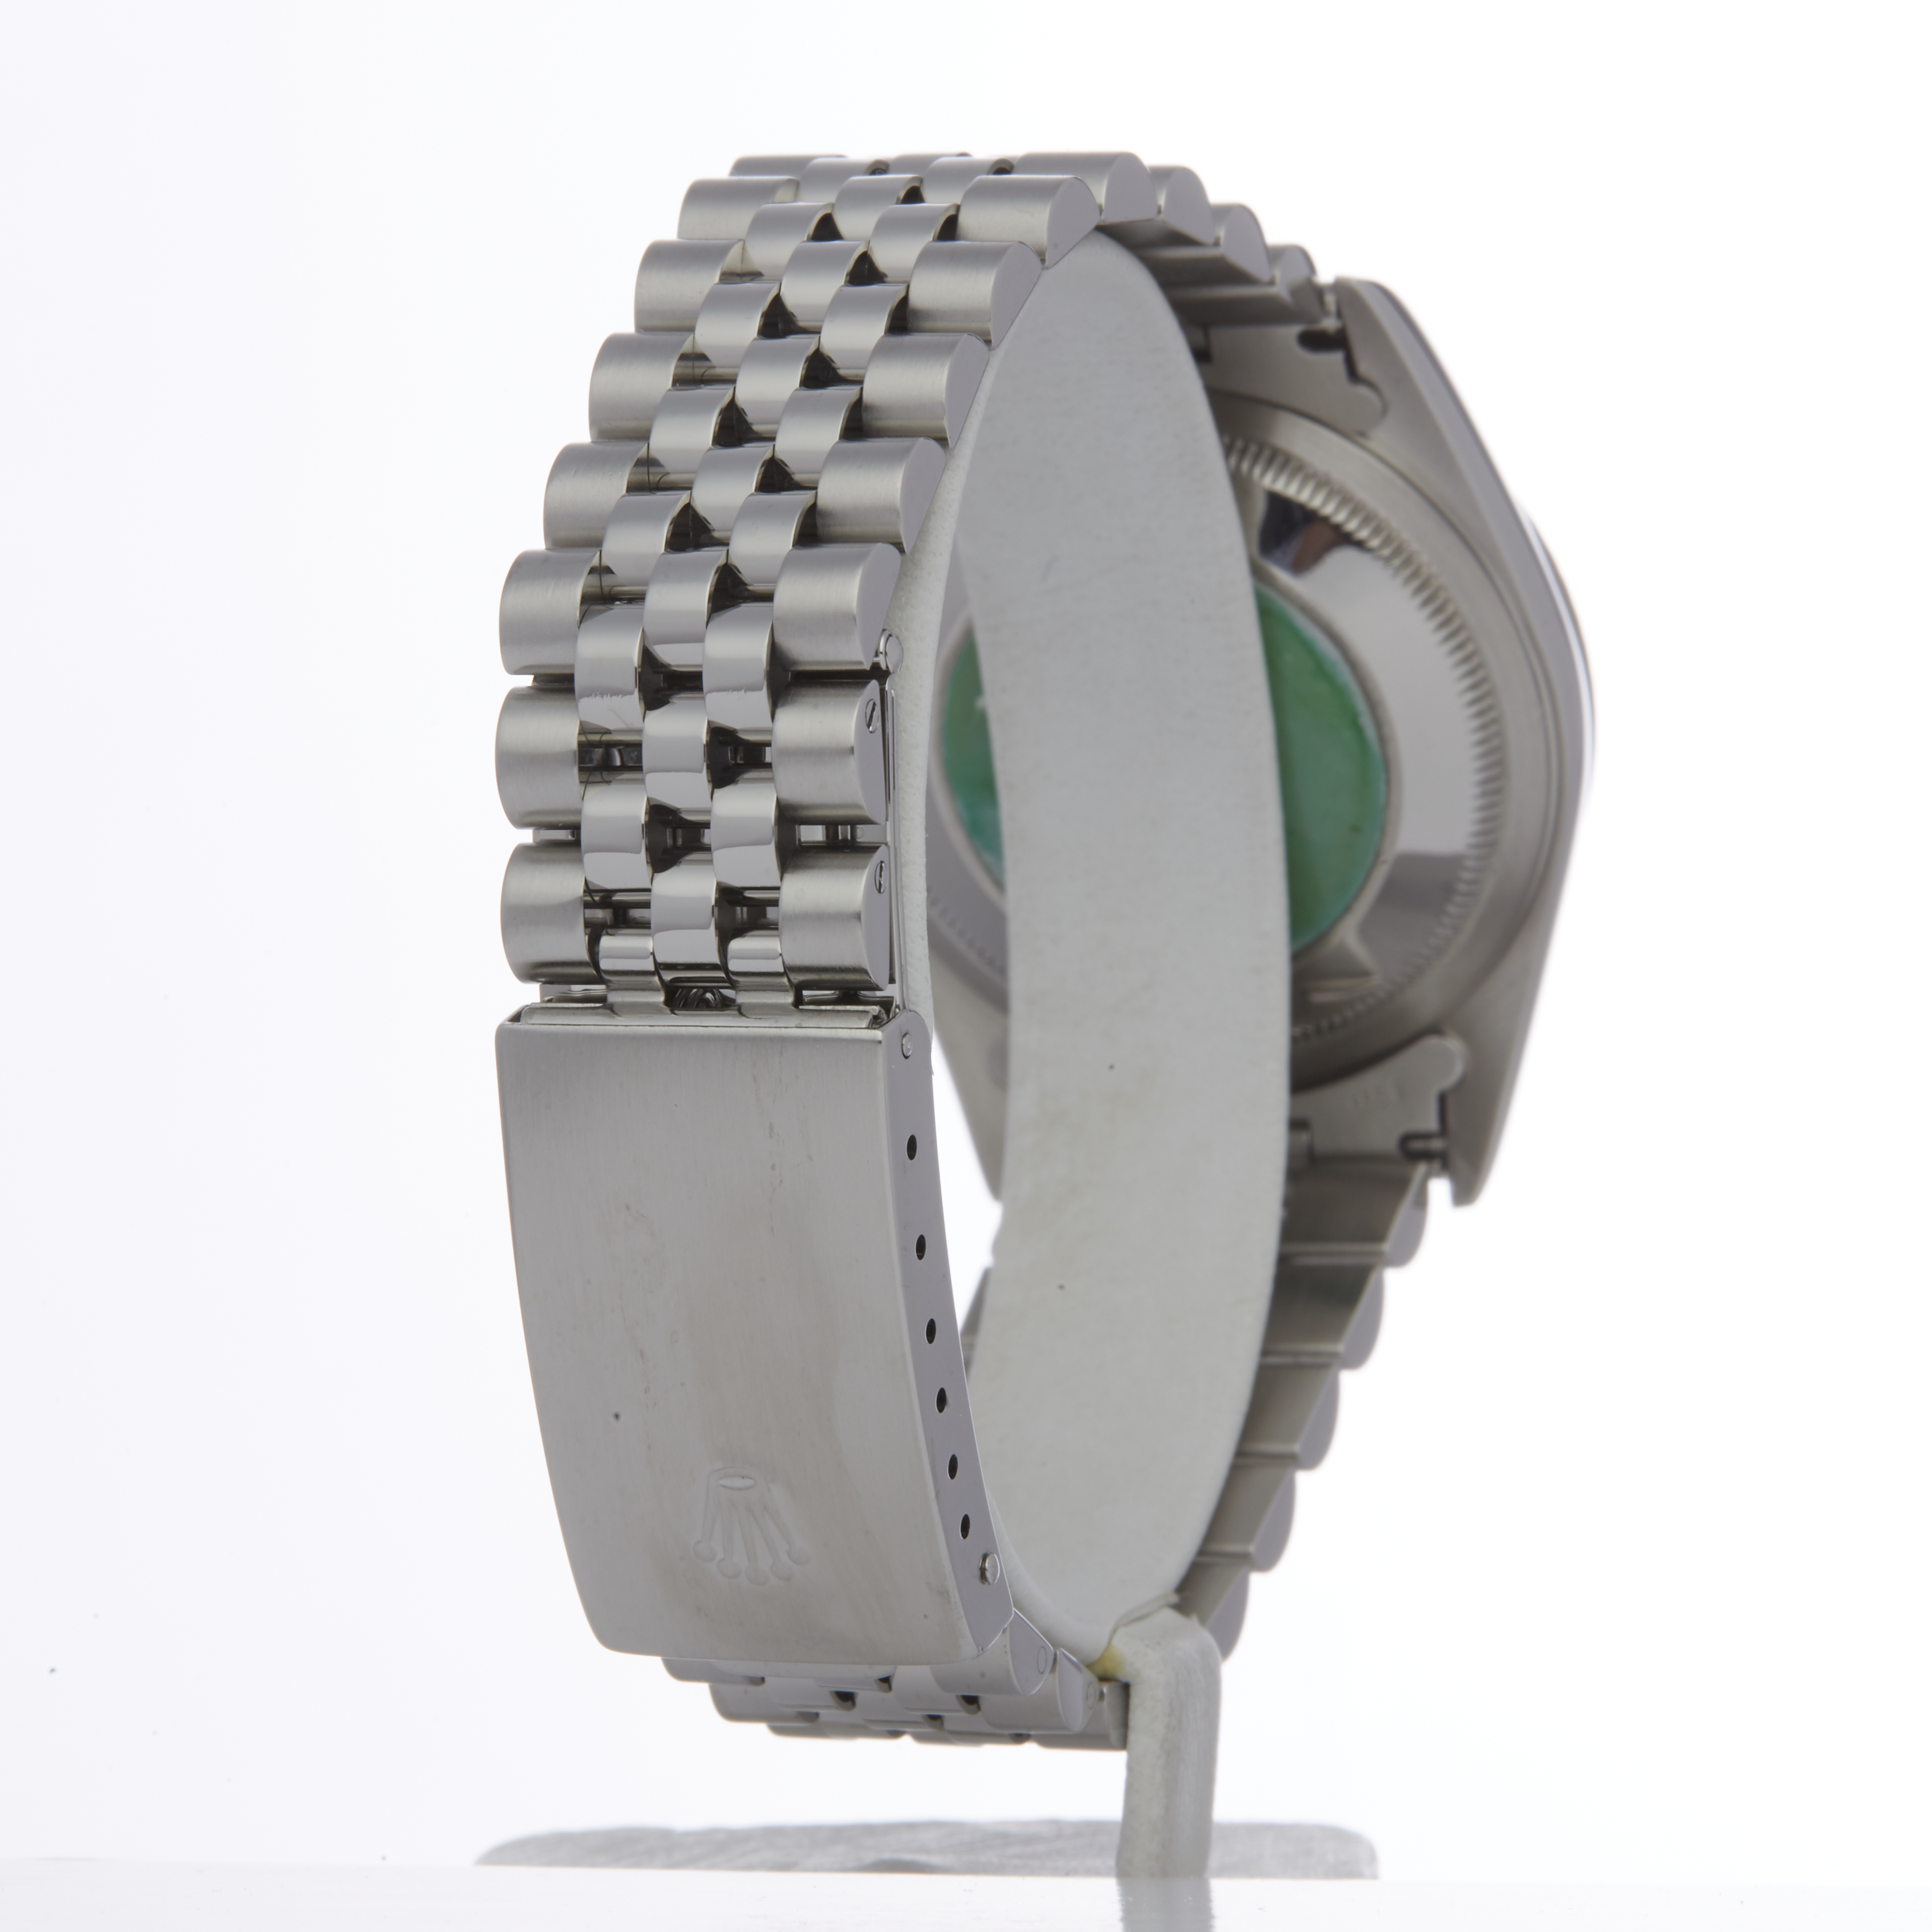 Rolex Datejust 36 16234 Unisex Stainless Steel Watch - Image 3 of 6